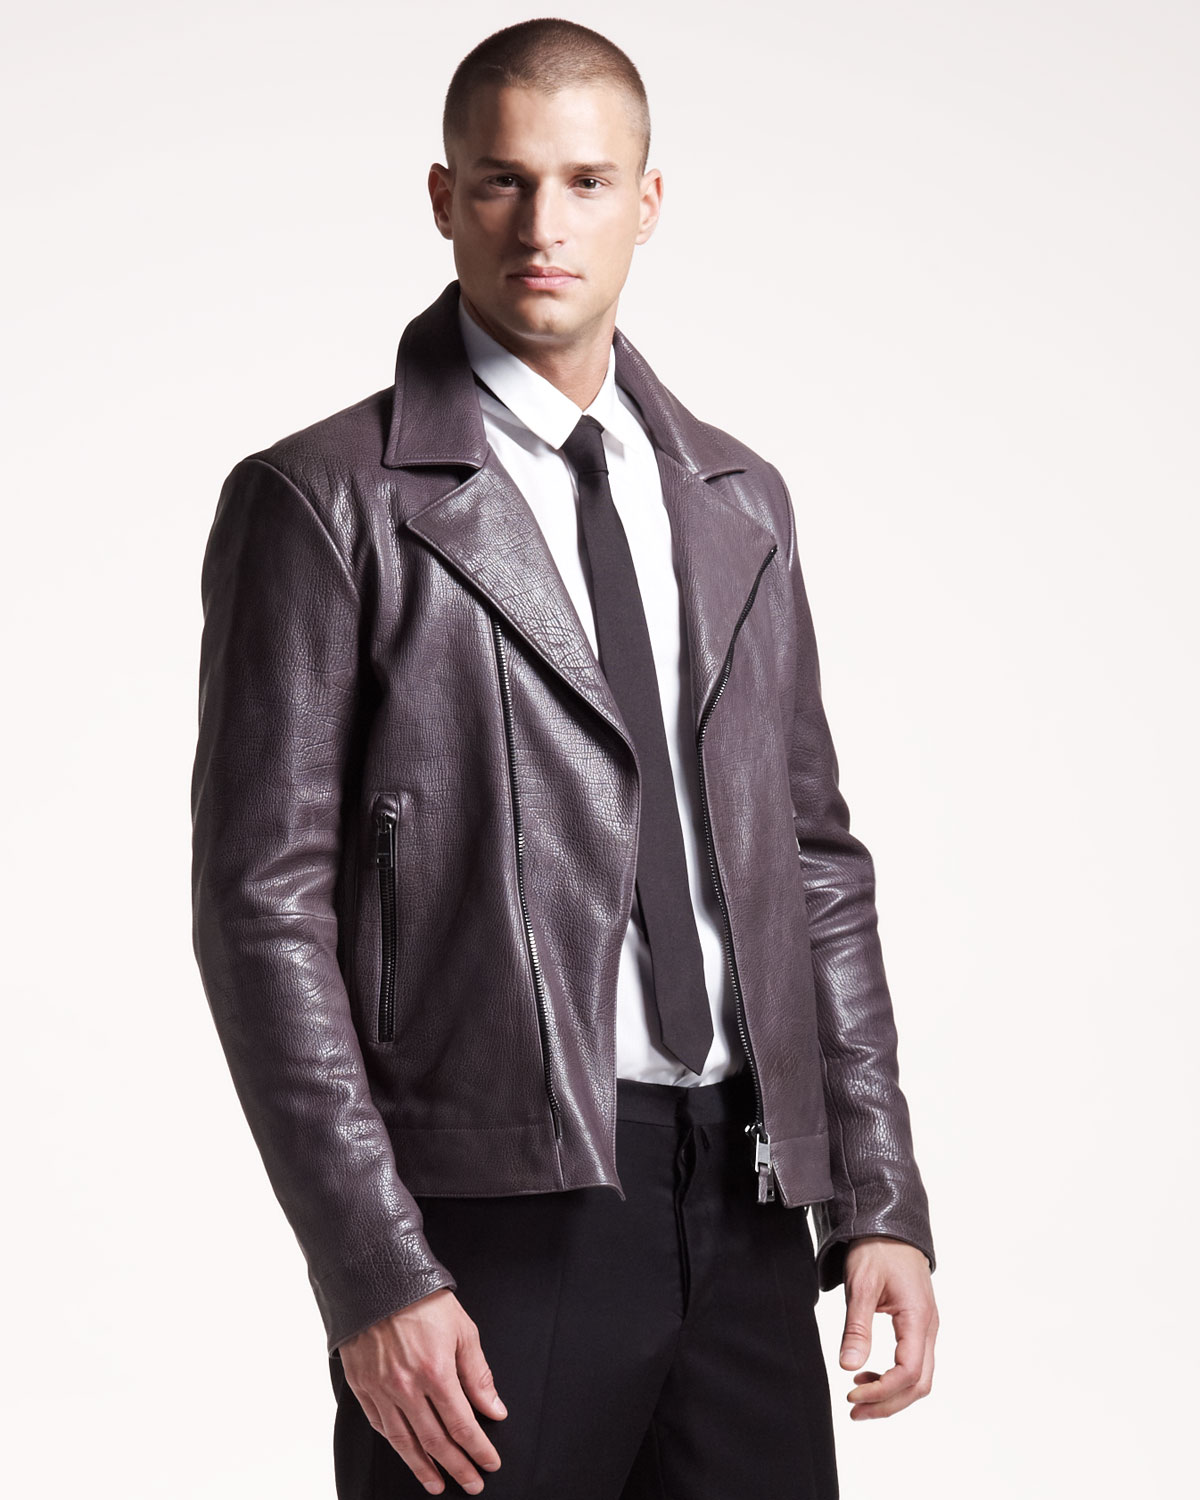 lyst jil sander leather motorcycle jacket in purple for men. Black Bedroom Furniture Sets. Home Design Ideas